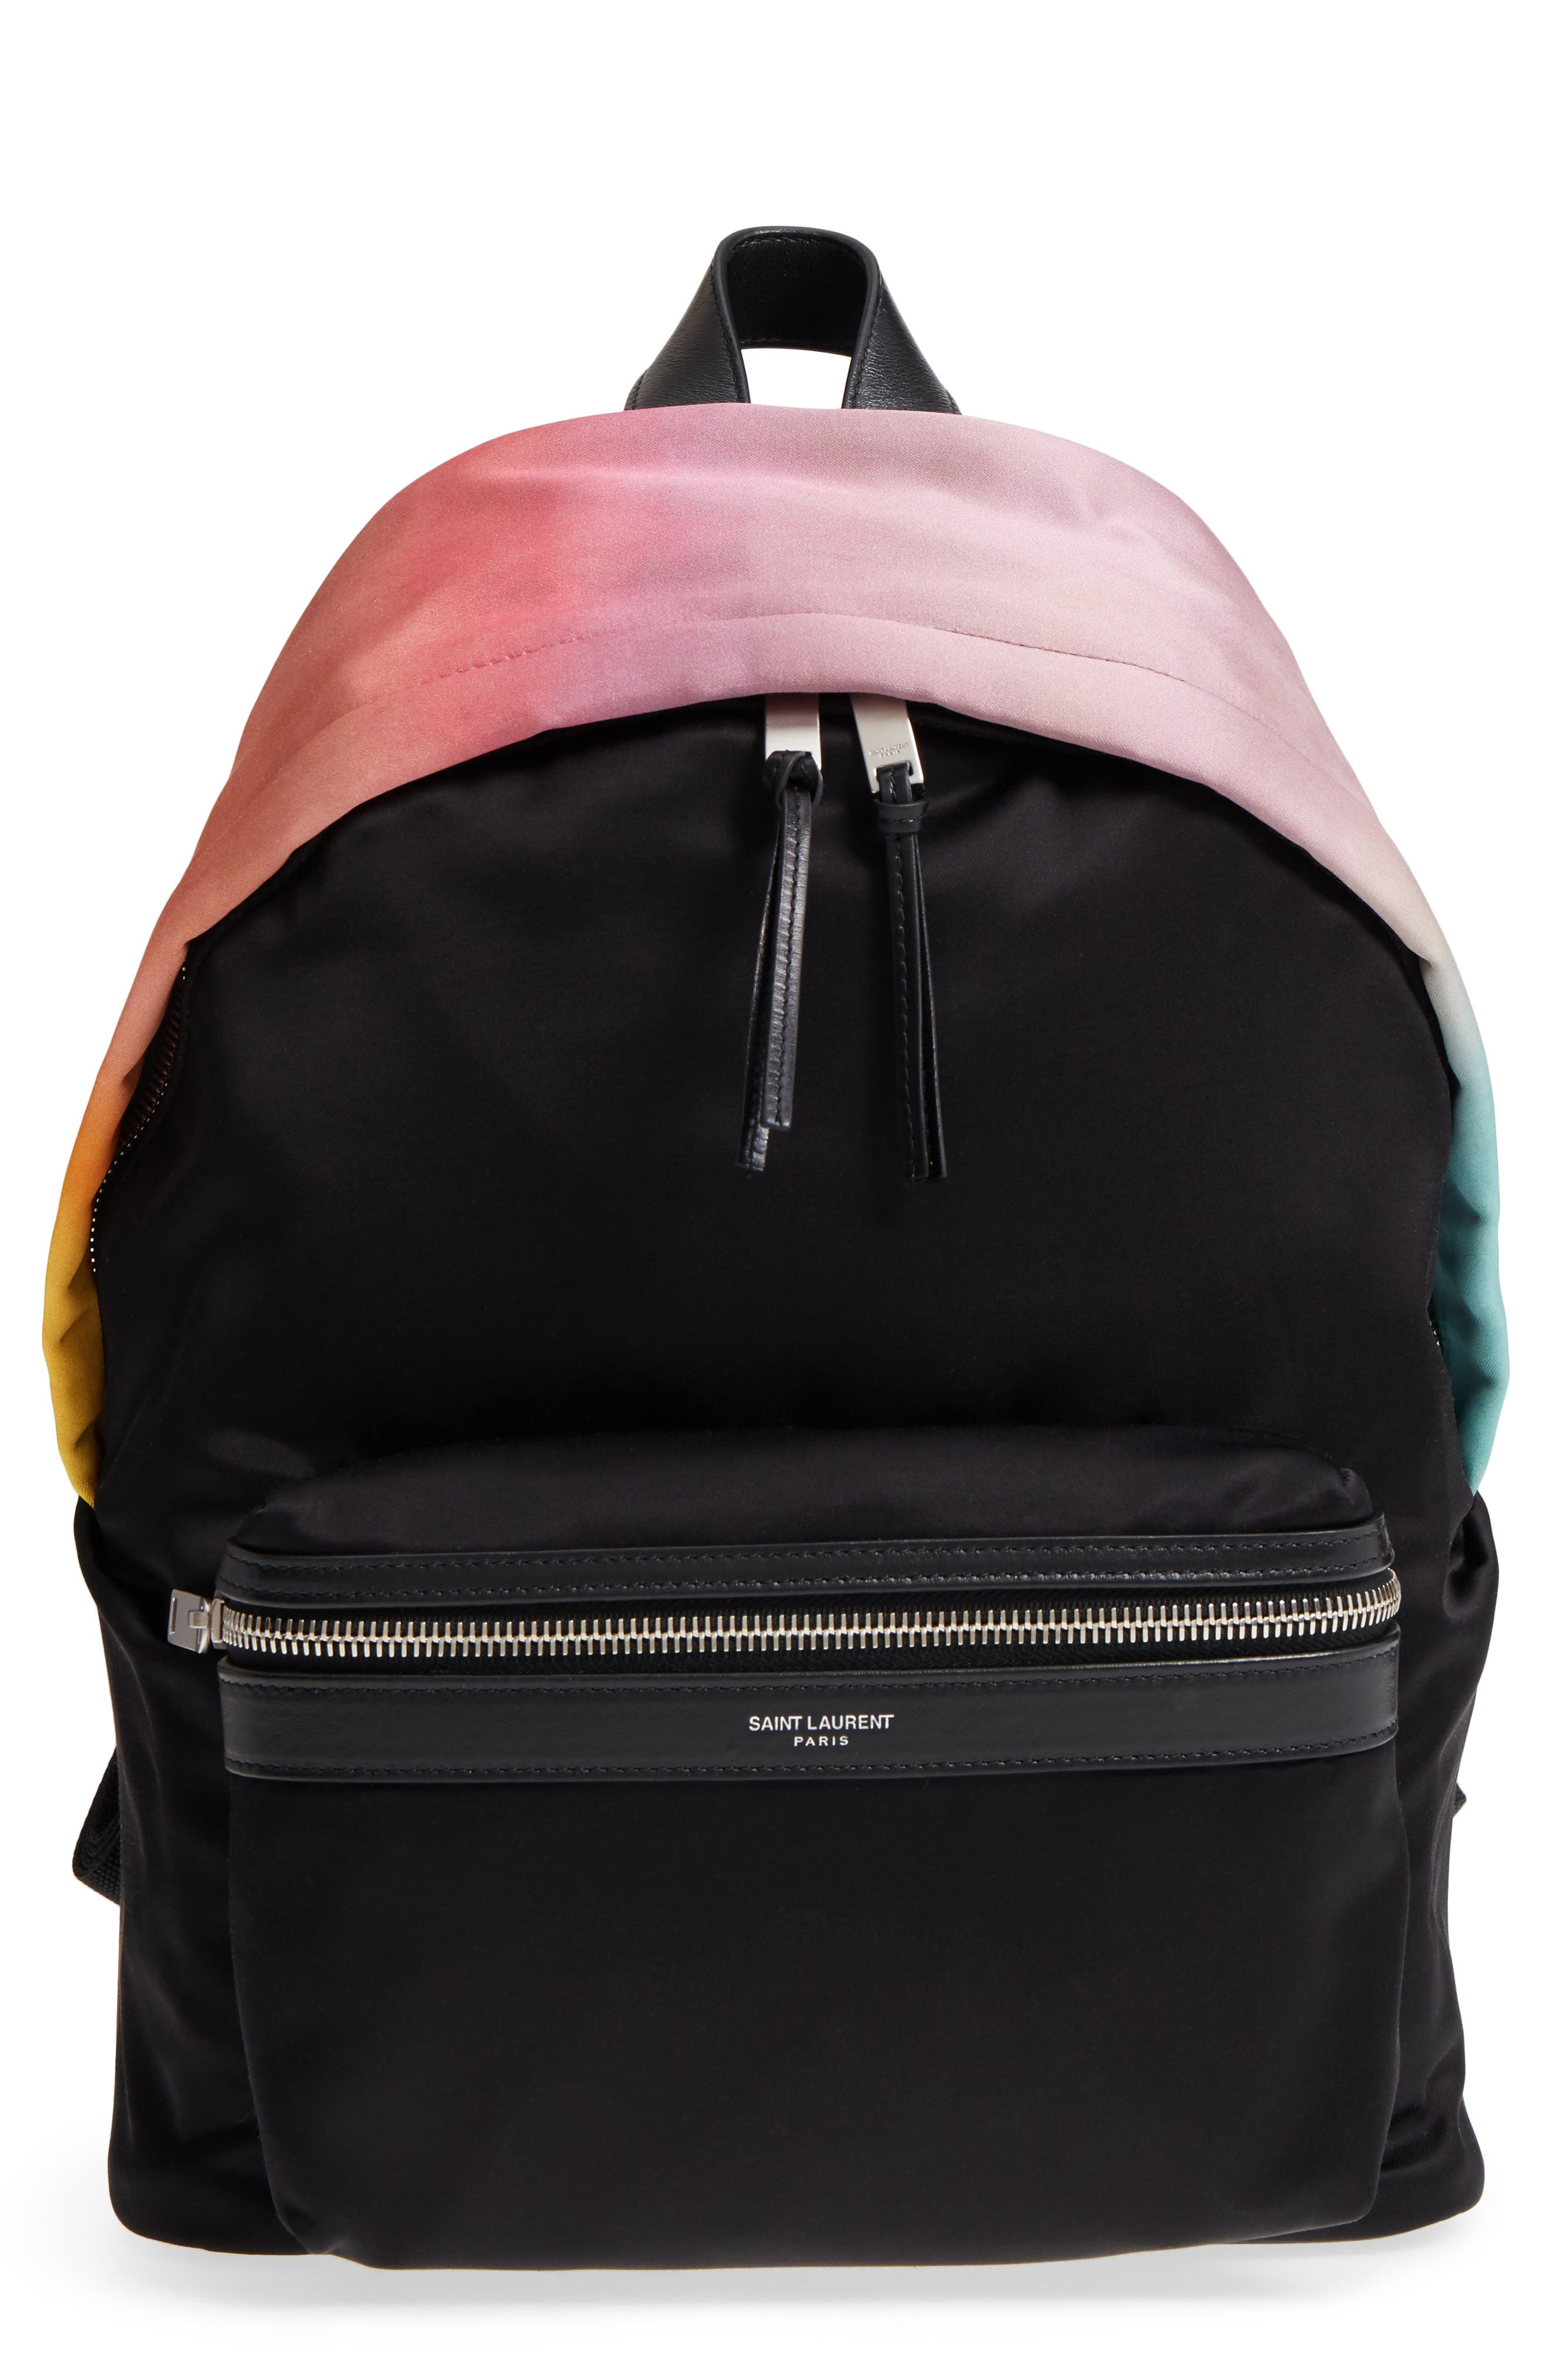 City Ombré Print Satin Backpack,                         Main,                         color, Pink Multi